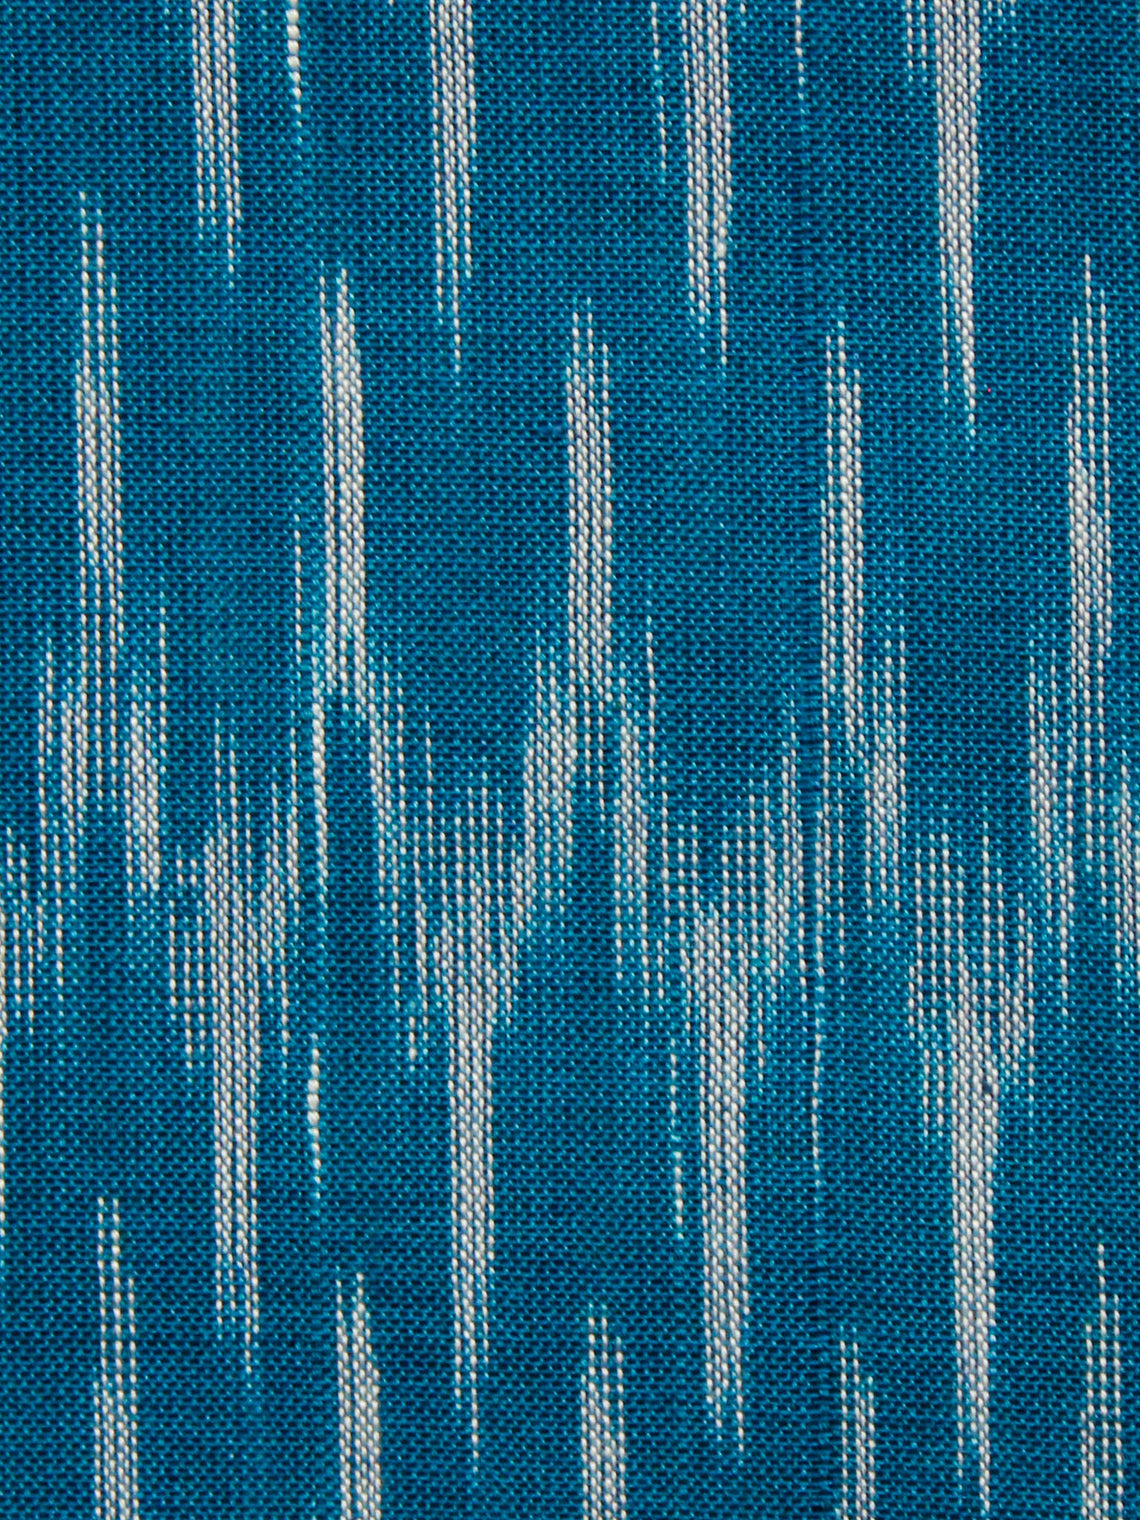 Blue Grey Hand Weaved Ikat Mercerised  Fabric Per Meter - F002F1432